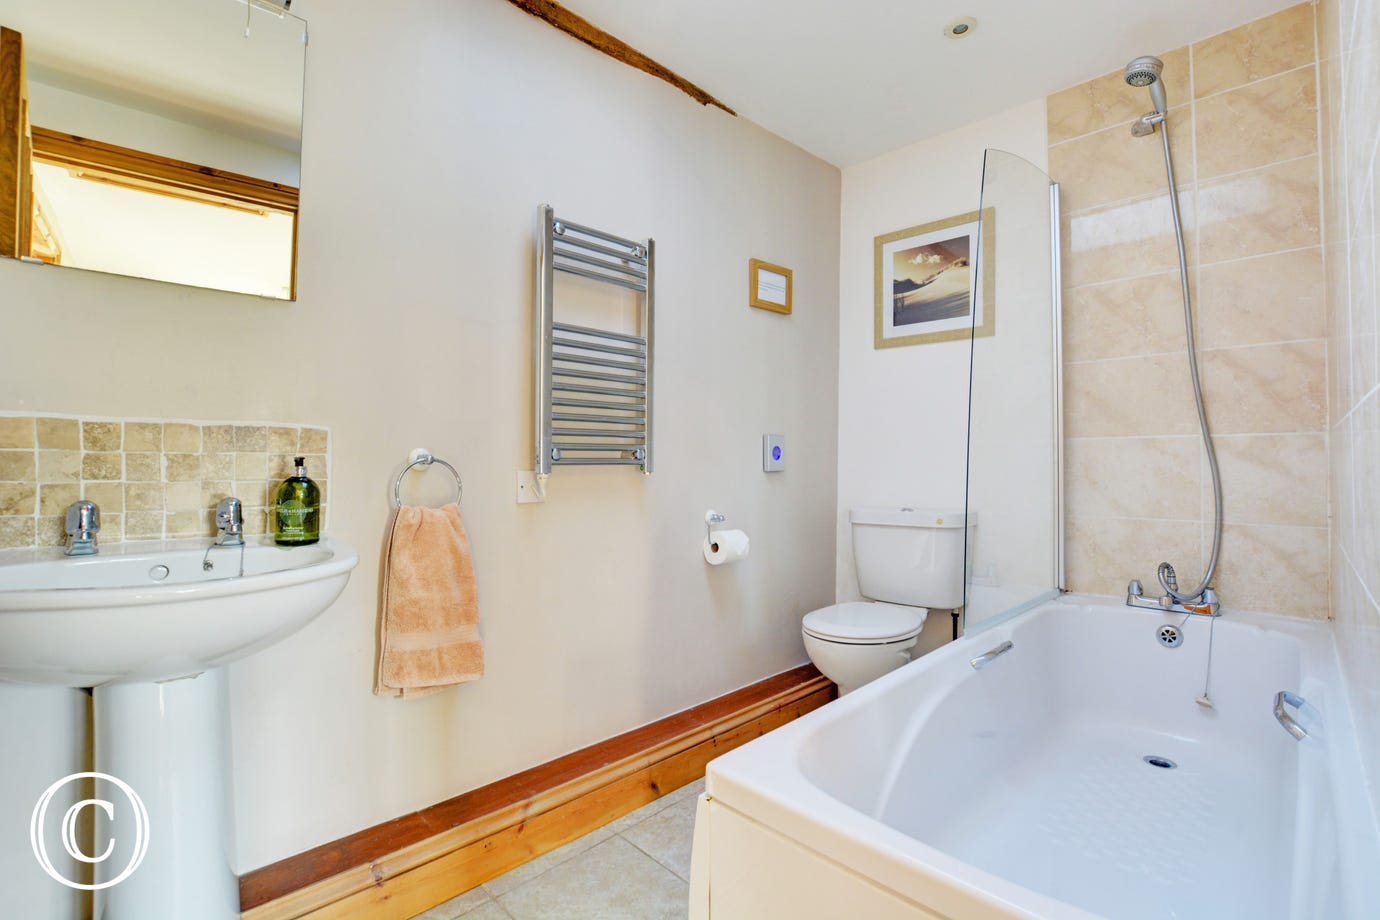 The modern bathroom has a bath and over bath shower, with lovely attention to detail